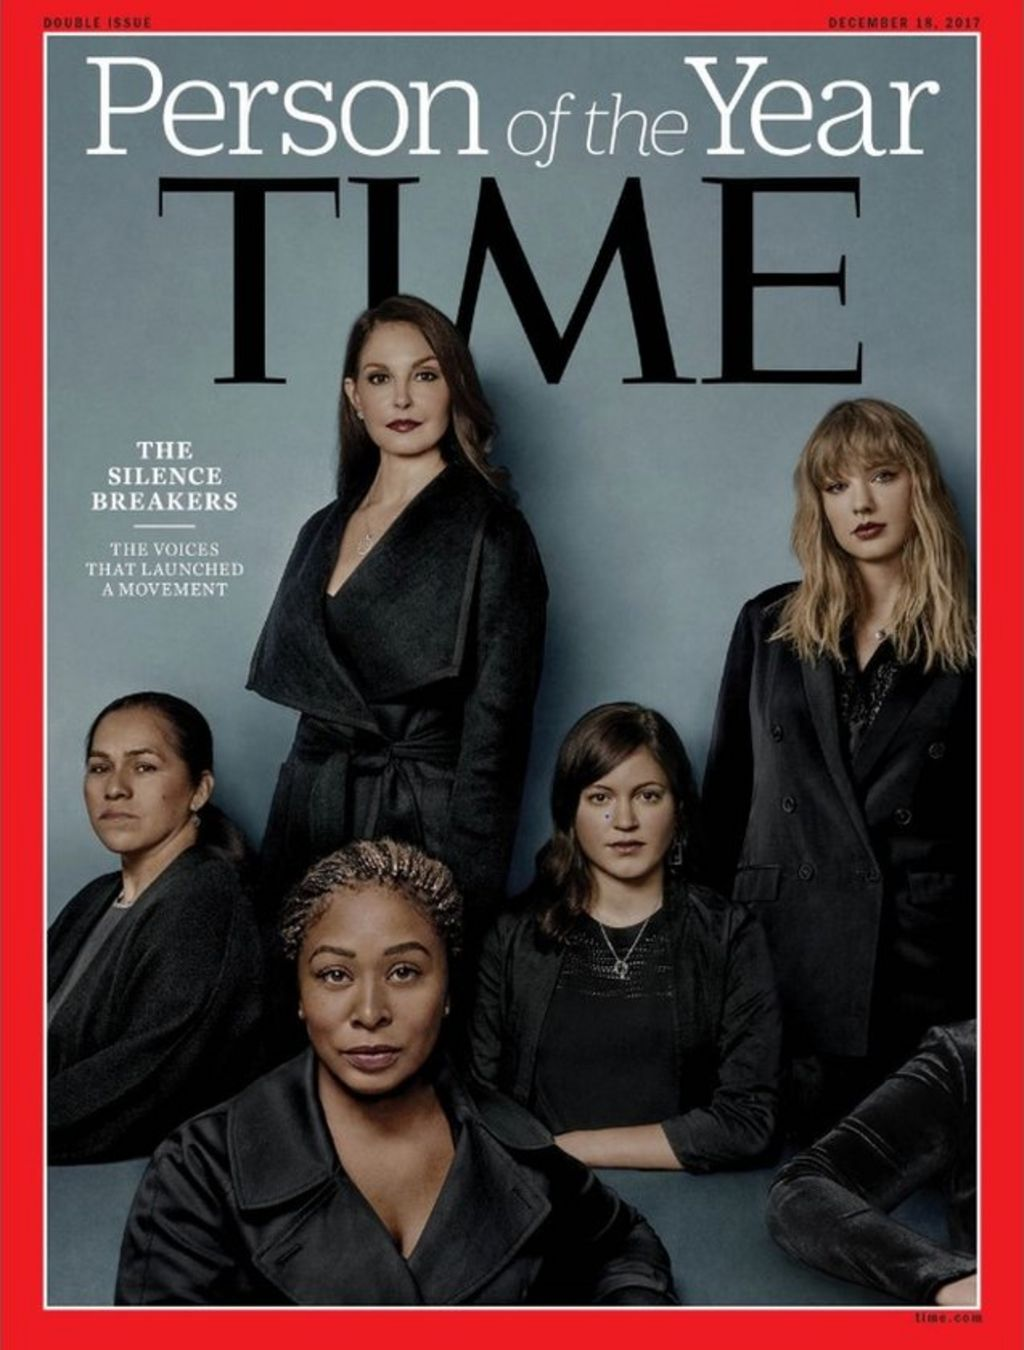 Time honours 'silence breakers' on abuse